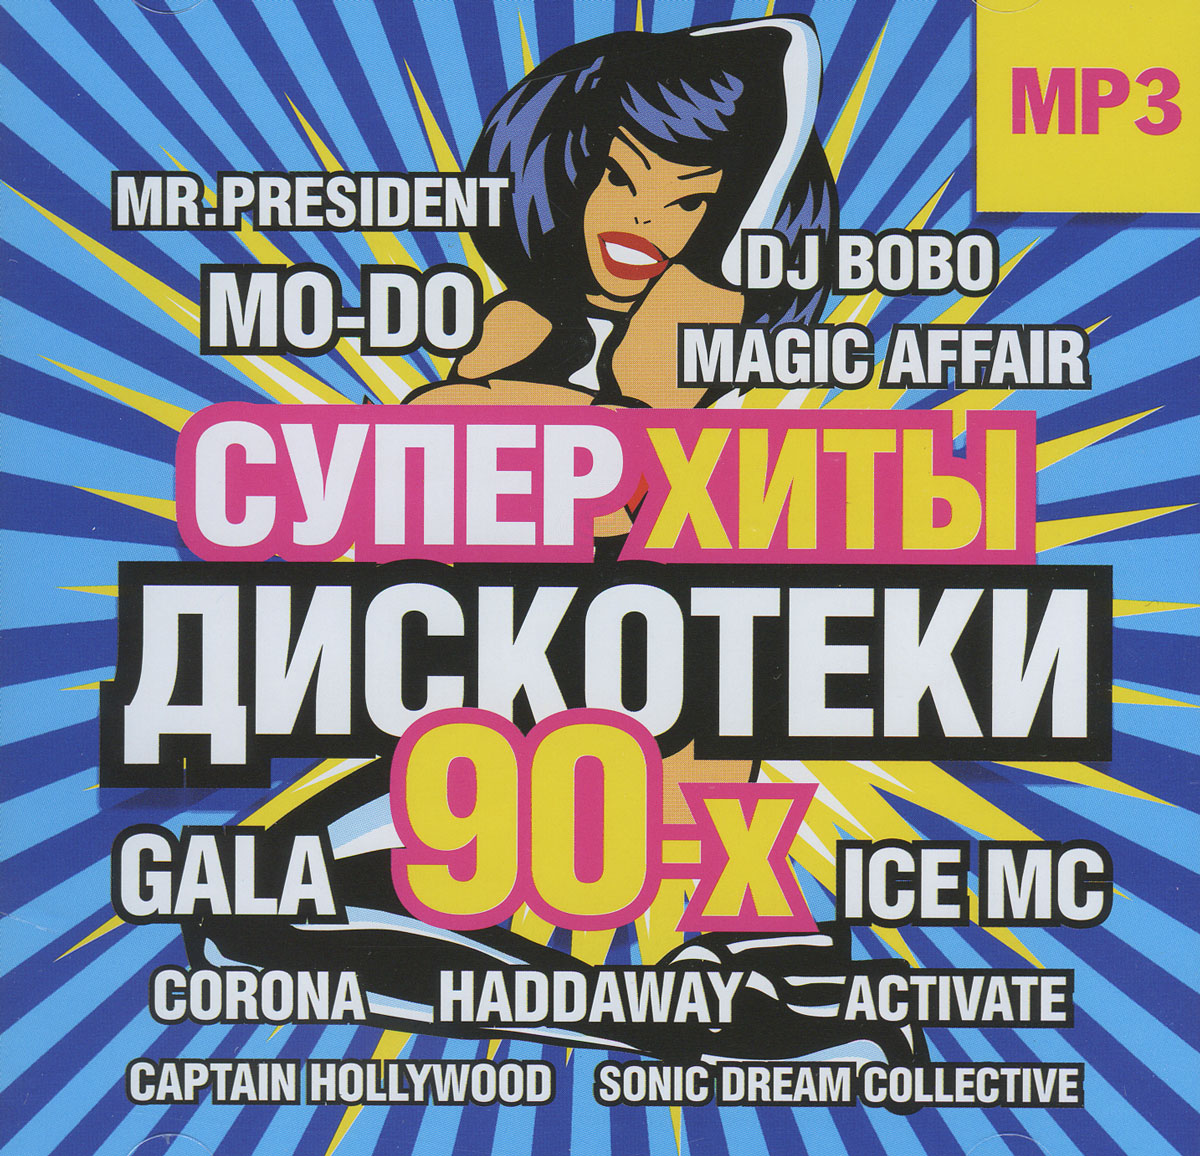 Содержание:            01. Mr.President - Coco Jambo                02. Corona - The Rhythm Of The Night                03. Ice Mc - Russian Roulette More & More                 04. Dj Bobo - Take Control                05. Activate - The Beat Of The Drum                06. Mo-Do Eins, Zwei, Polizei                07. Captain Hollywood - I Need A Lover                08. Alexia - Me And You                09. Magic Affair - Omen Iii                10. Dj Miko - What's Up                11. Mr.President - Turn It Up!                12. Ice Mc - Laika                13. Captain Hollywood - After Party Over And Over                14. Gala - Freed From Desire                15. Alexia - Uh La La La                16. Sonic Dream Collective - Take Me Back                17. Dj Bobo - Everybody                18. Corona - I Don't Wanna Be A Star                19. Mr.President - 4 On The Floor                20. Ice Mc - Take Away The Colour                21. Activate - I Say What I Want                22. Magic Affair - In The Middle Of The Night                23. Radiorama - More Time                24. Mr.President - Where The Sun Goes Down                25. Corona - Don't Go Breaking My Heart                26. Haddaway - Catch A Fire                27. Sonic Dream Collective - Don't Go Breaking My Heart                28. Ice Mc - Gone With The Wind                29. Activate - Let The Rhythm Take Control                30. Dj Bobo - Keep On Dancing                31. Gala - Let A Boy Cry                32. Corona - Baby Baby                33. Mr.President - On My Mind                34. Alexia - Summer Is Crazy                35. Radiorama & Axel Force - Nothing Can Keep Me From You                36. Activate - Save Me                37. Doop - Yoghurt                38. Gala - Come Into My Life                39. Corona - Try Me Out                40. Chyp-Notic - Don't Play My Song                41. Sonic Dream Collective - Oh, Baby All                42. Haddaway - Mama?S House                43. Mr.President - Close To You                44. Magic Affair - Give Me All Your Love                45. Ice Mc - Dark Night Rider                46. Captain Hollywood - One Love                47. Antique No - Time To Play                48. Miss Jane It's - A Fine Day                49. Darude Feel - The Beat                50. Doop Wan Too!